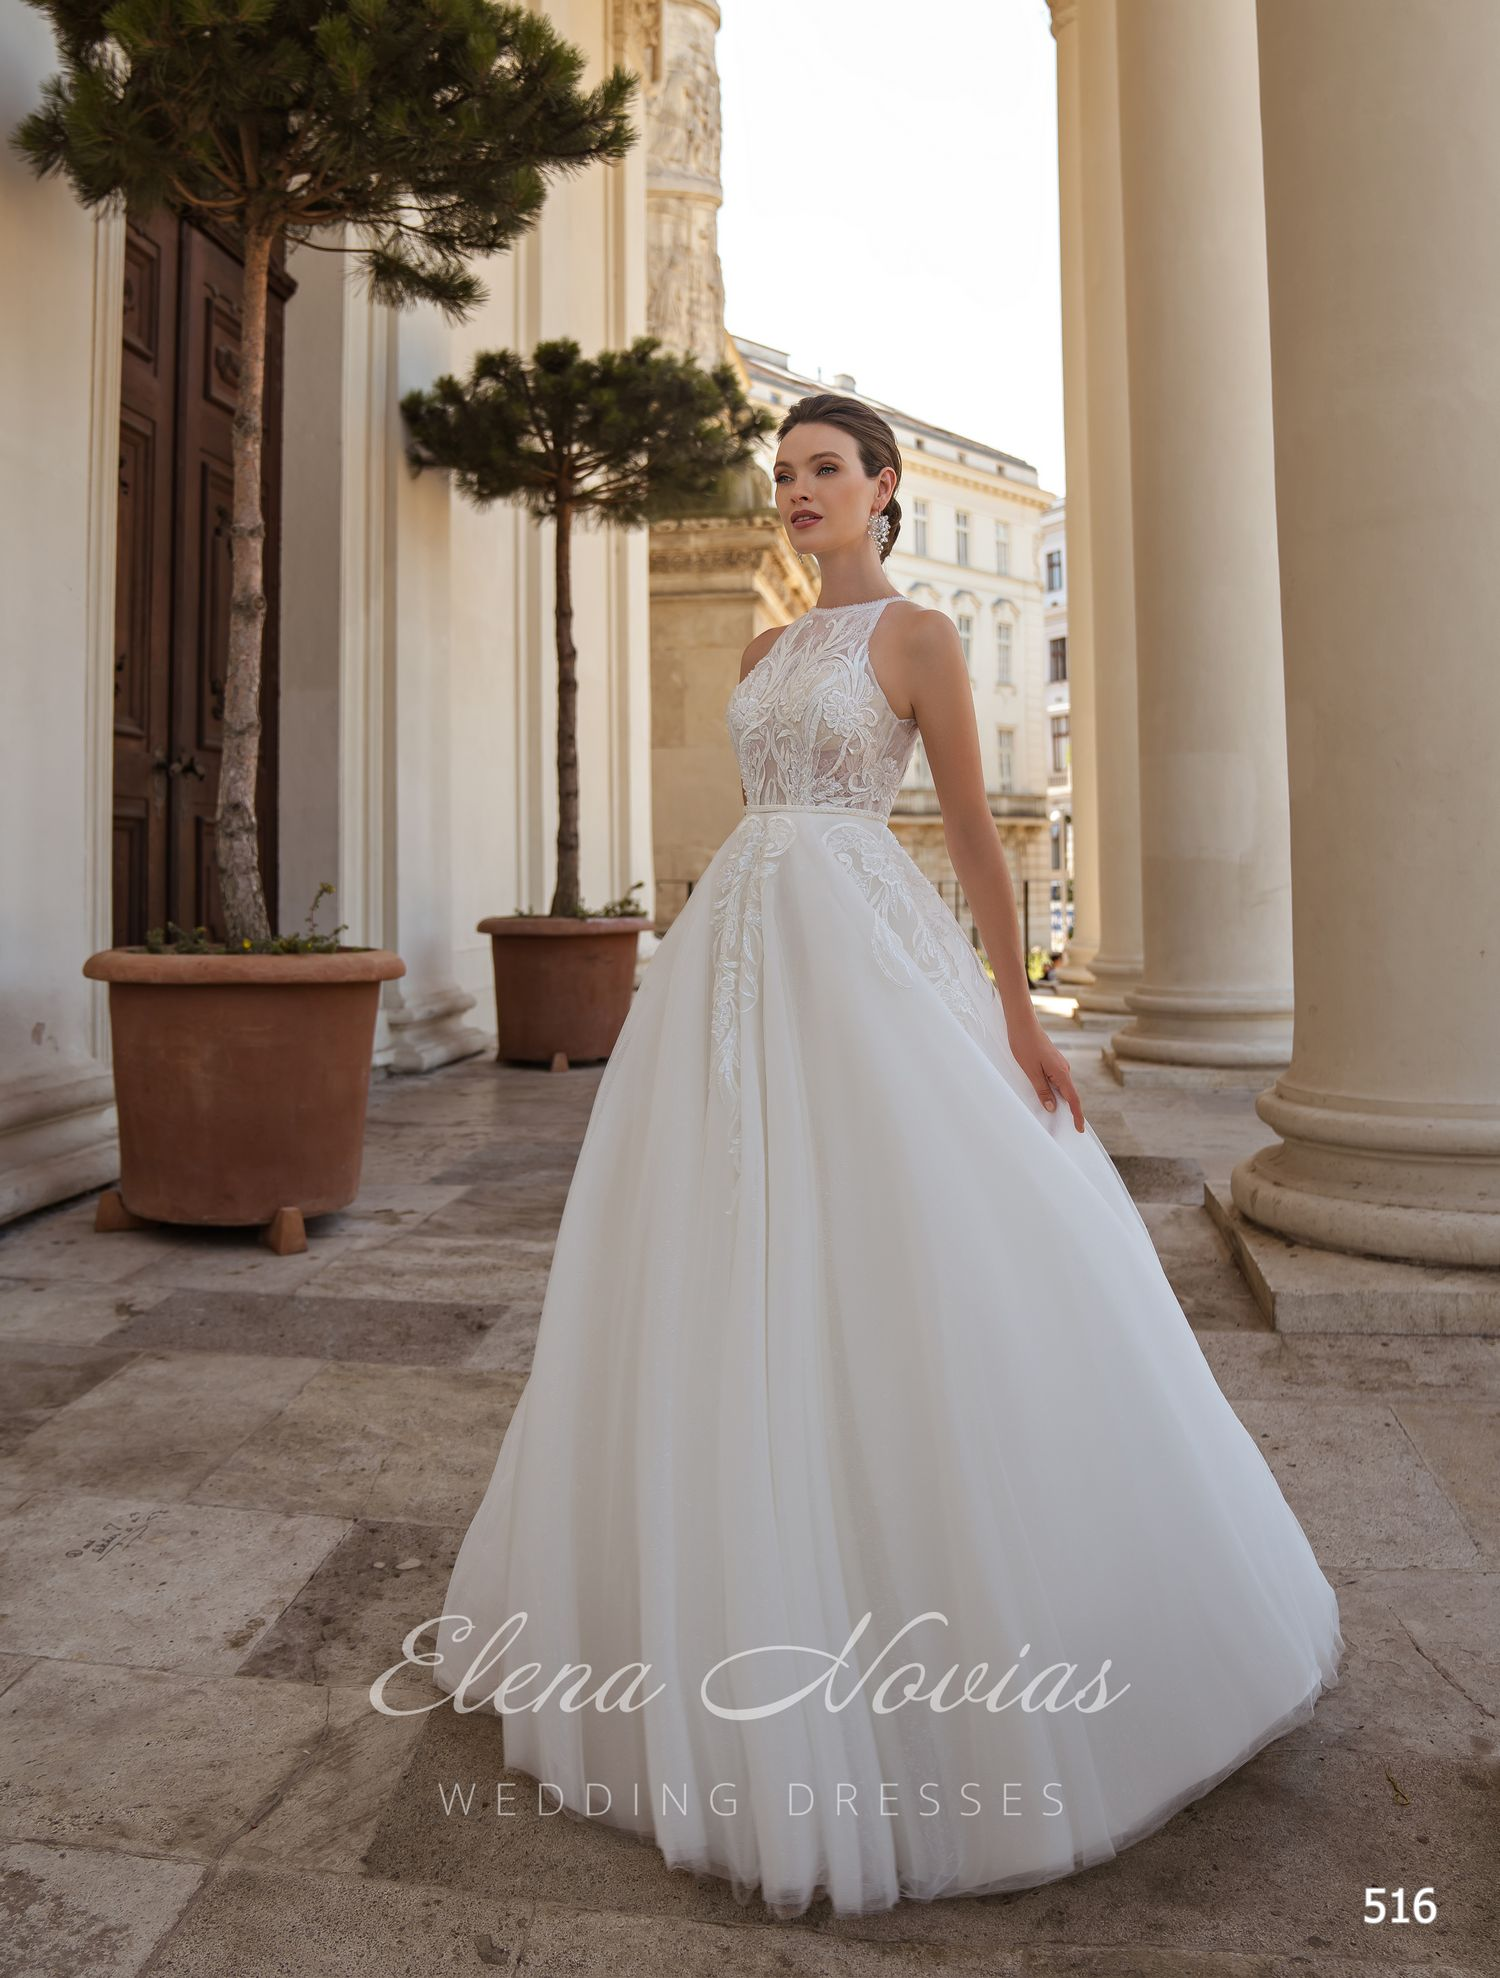 Wedding dresses 516 1